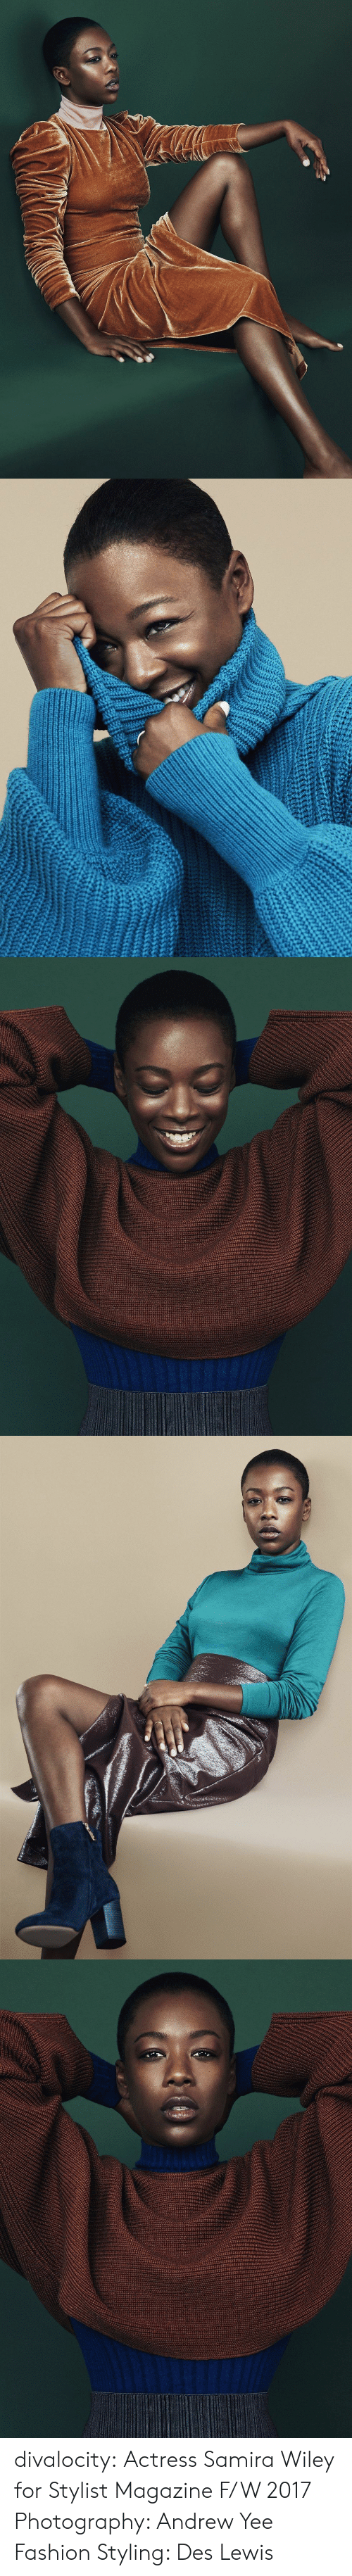 wiley: divalocity: Actress Samira Wiley for Stylist Magazine F/W 2017 Photography: Andrew Yee Fashion Styling: Des Lewis